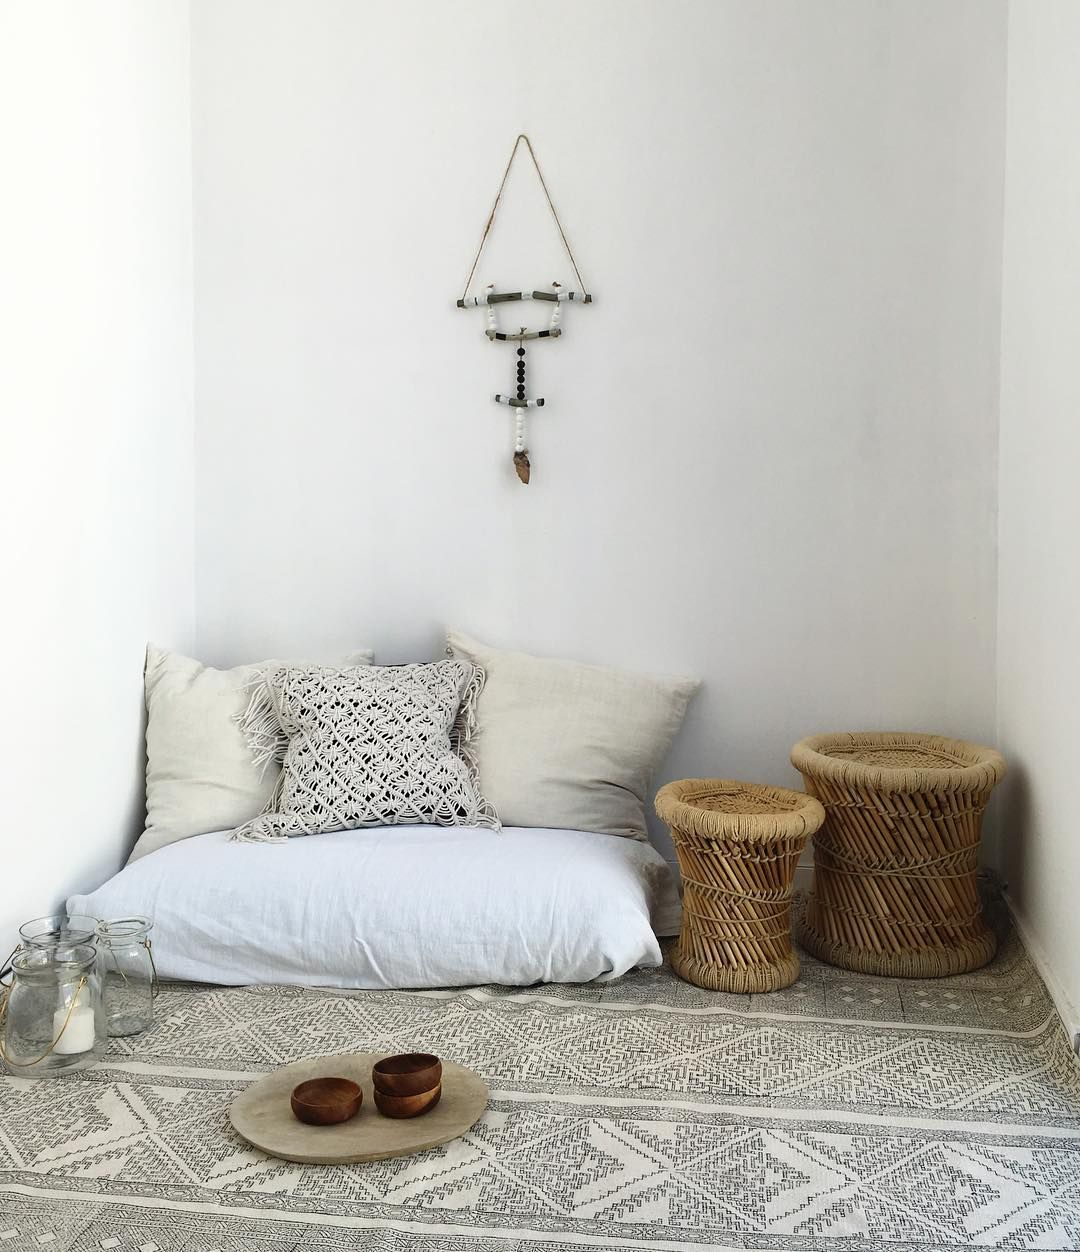 boho decor home  chill out  interior design  floor